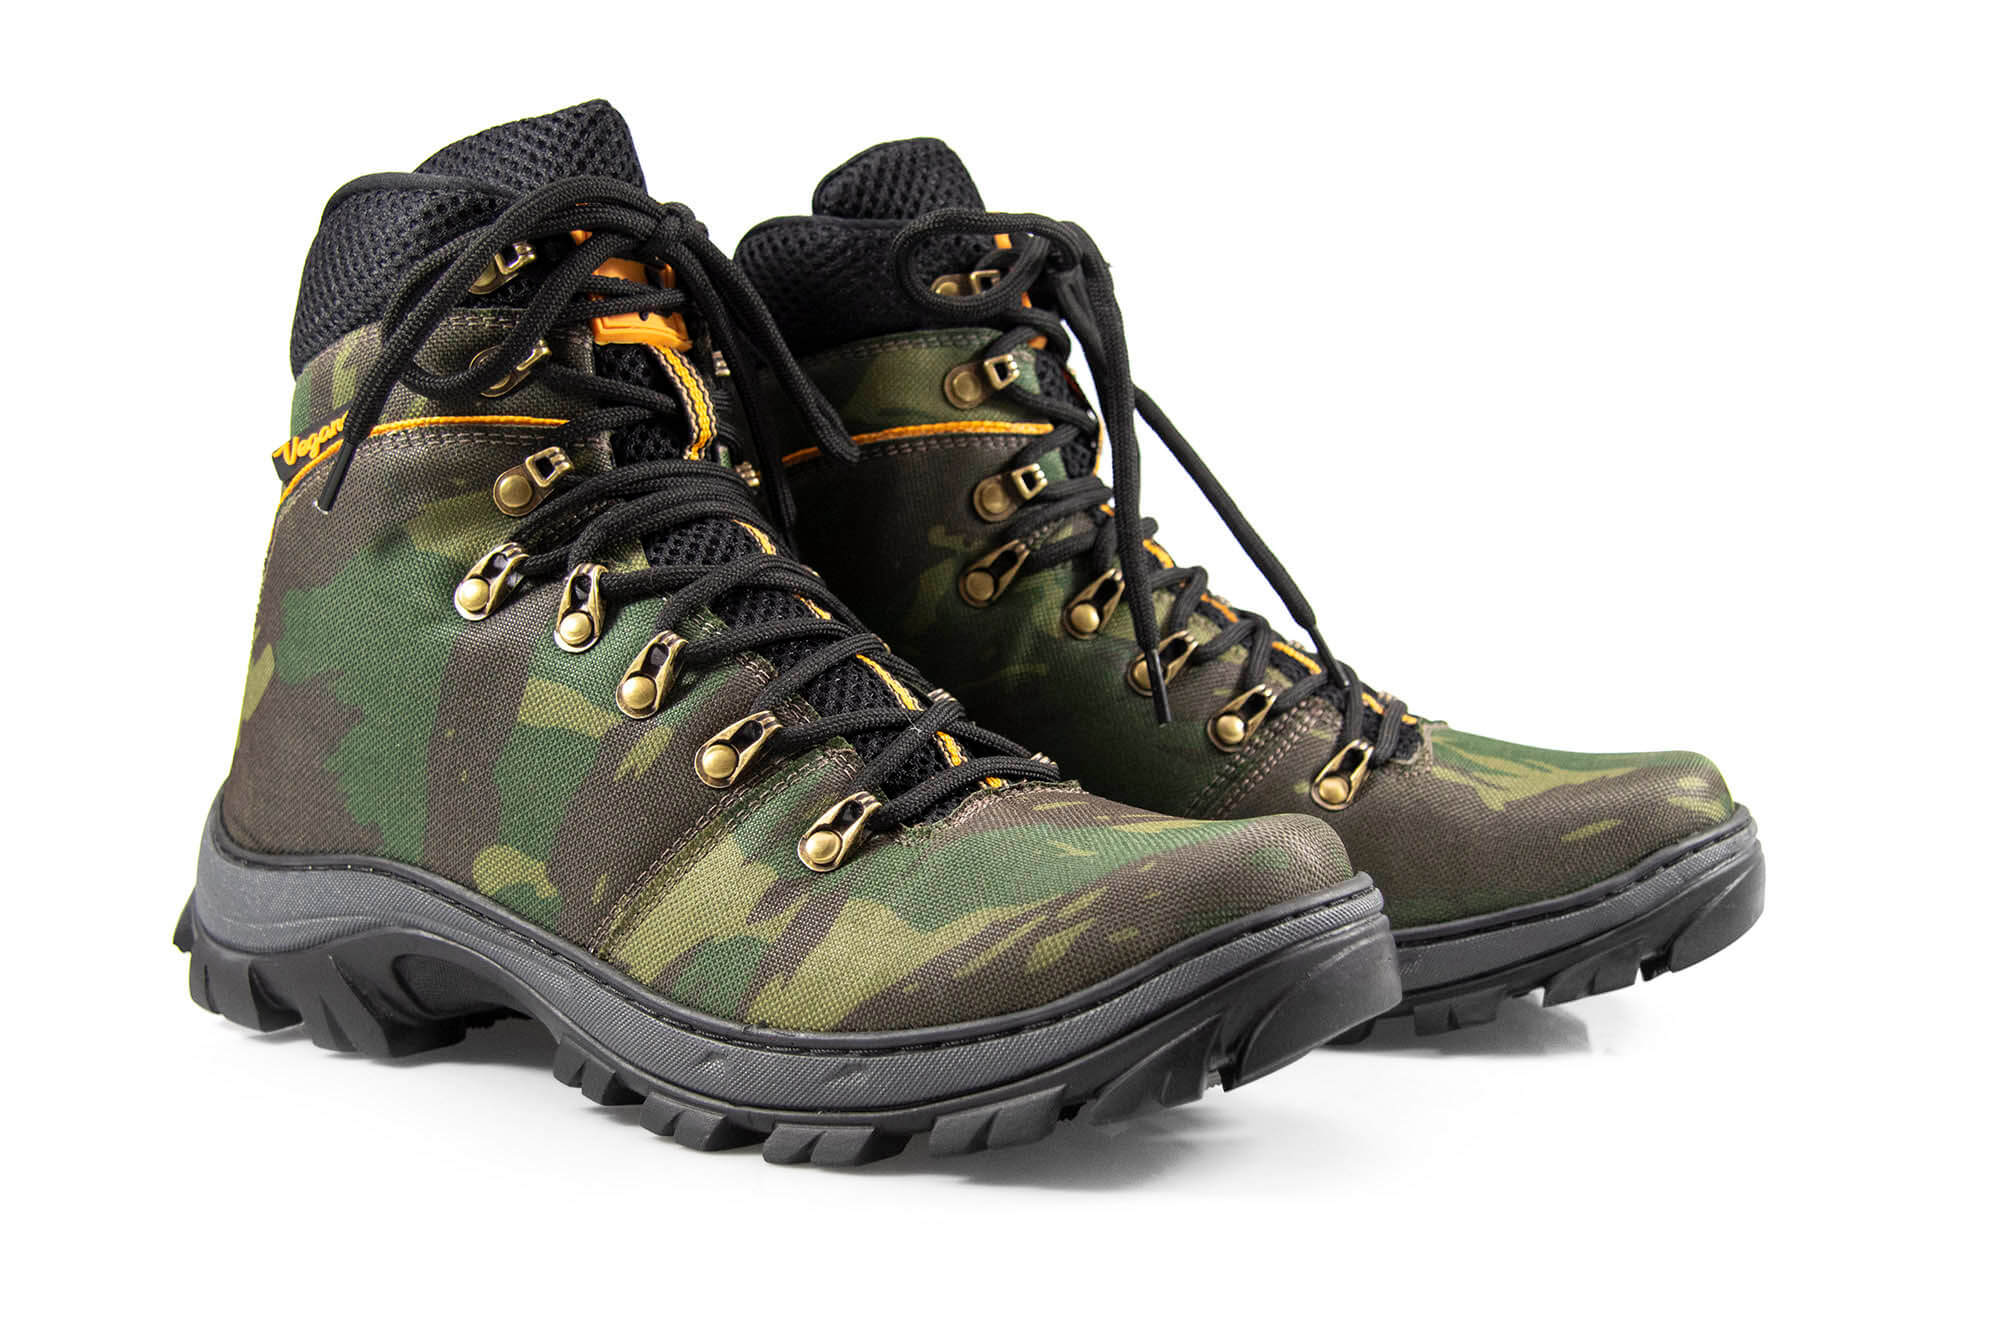 Bota Vegano Shoes Cross Tanguá Camuflada